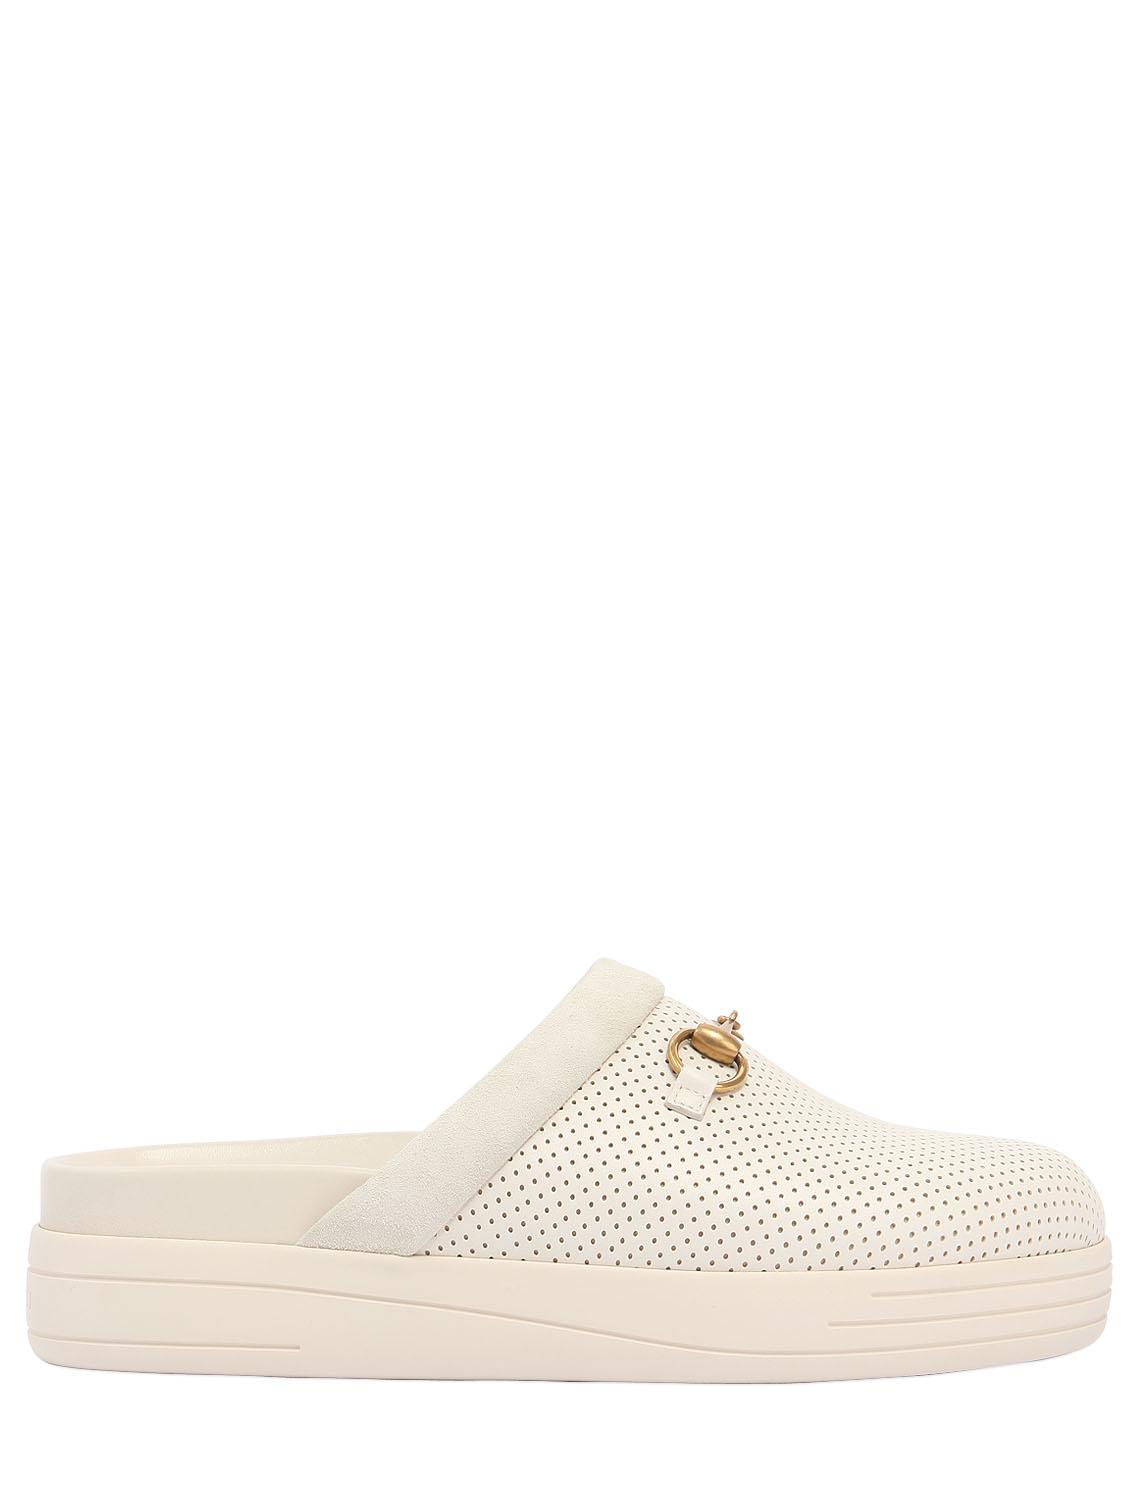 Lyst - Gucci Maiorca Perforated Nubuck Mules in White for Men